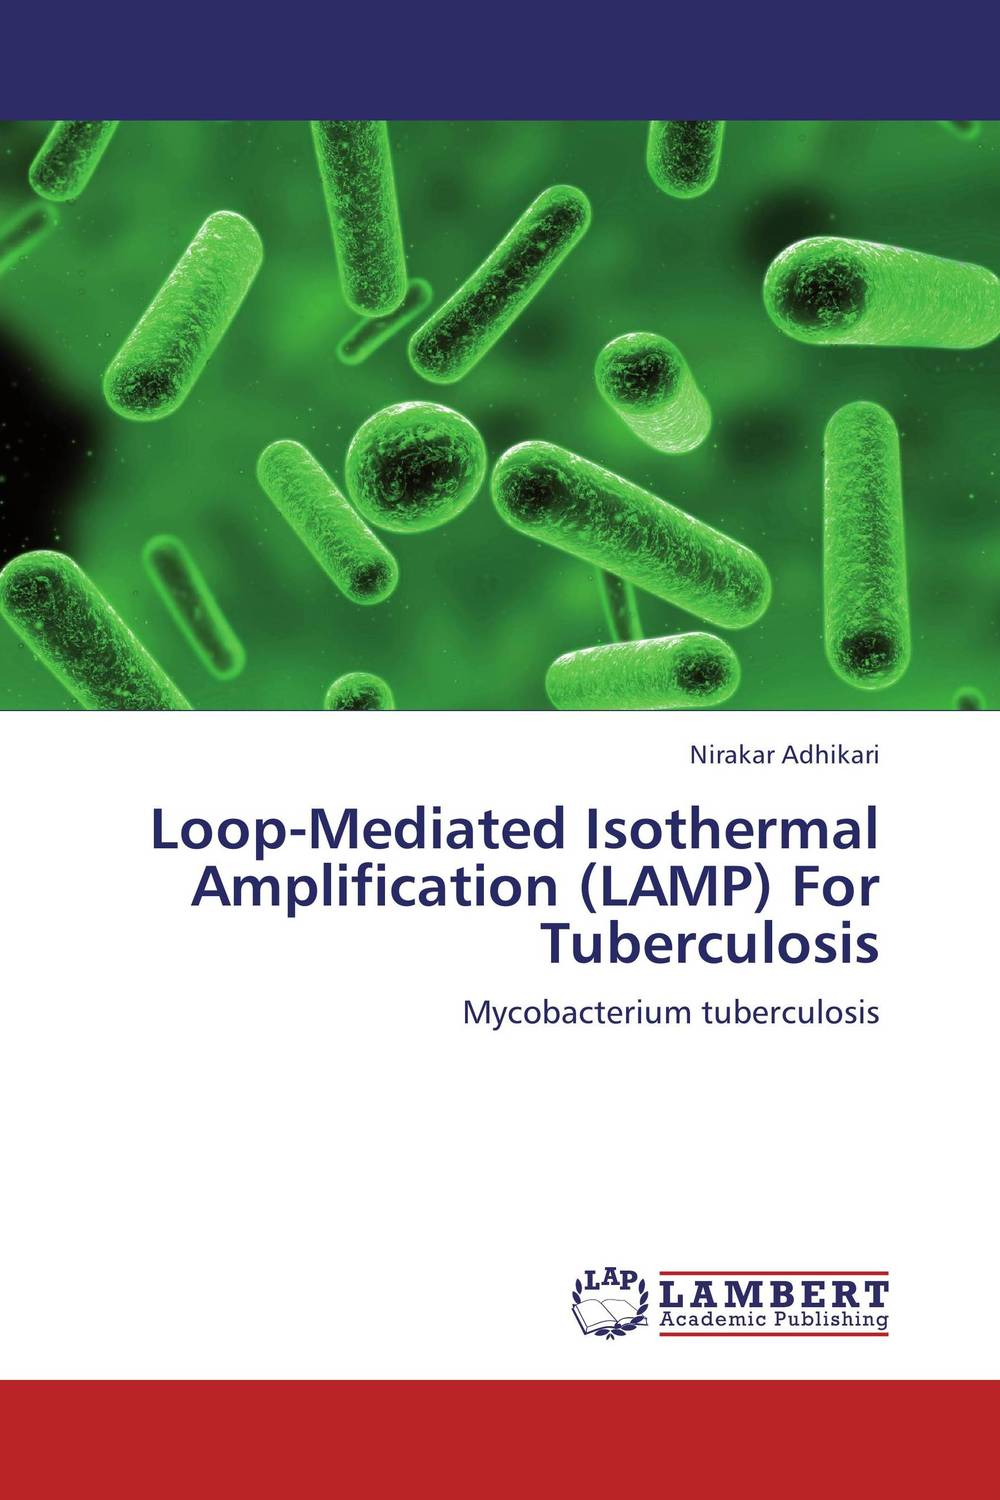 Loop-Mediated Isothermal Amplification (LAMP) For Tuberculosis comparison of global fisheries' efficiency levels using meta frontier